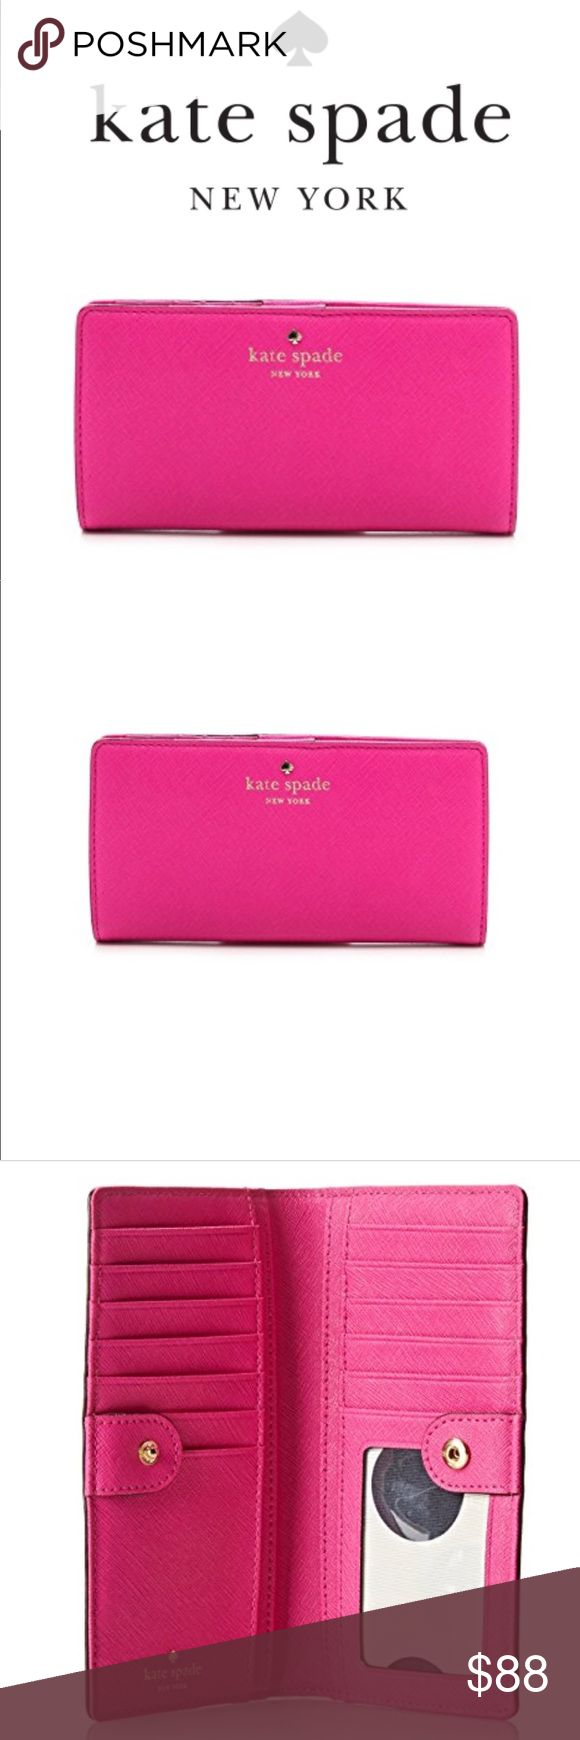 ‼️SALE‼️BRAND NEW ♠️ Wallet This Kate Spade New York Cedar Street Stacey wallet in Vivid Snapdragon is wrapped in crosshatch saffiano finished leather with 14-karat light gold plated hardware. This billfold has a snap closure, and Kate Spade's logo and heart stud accents the front. The back features an exterior zippered partial accordion pocket. The inside is wrapped in saffiano leather and custom Capital Kate spade Polka-Dot fabric. It offers 12 credit card slots, a clear ID slot and 4…